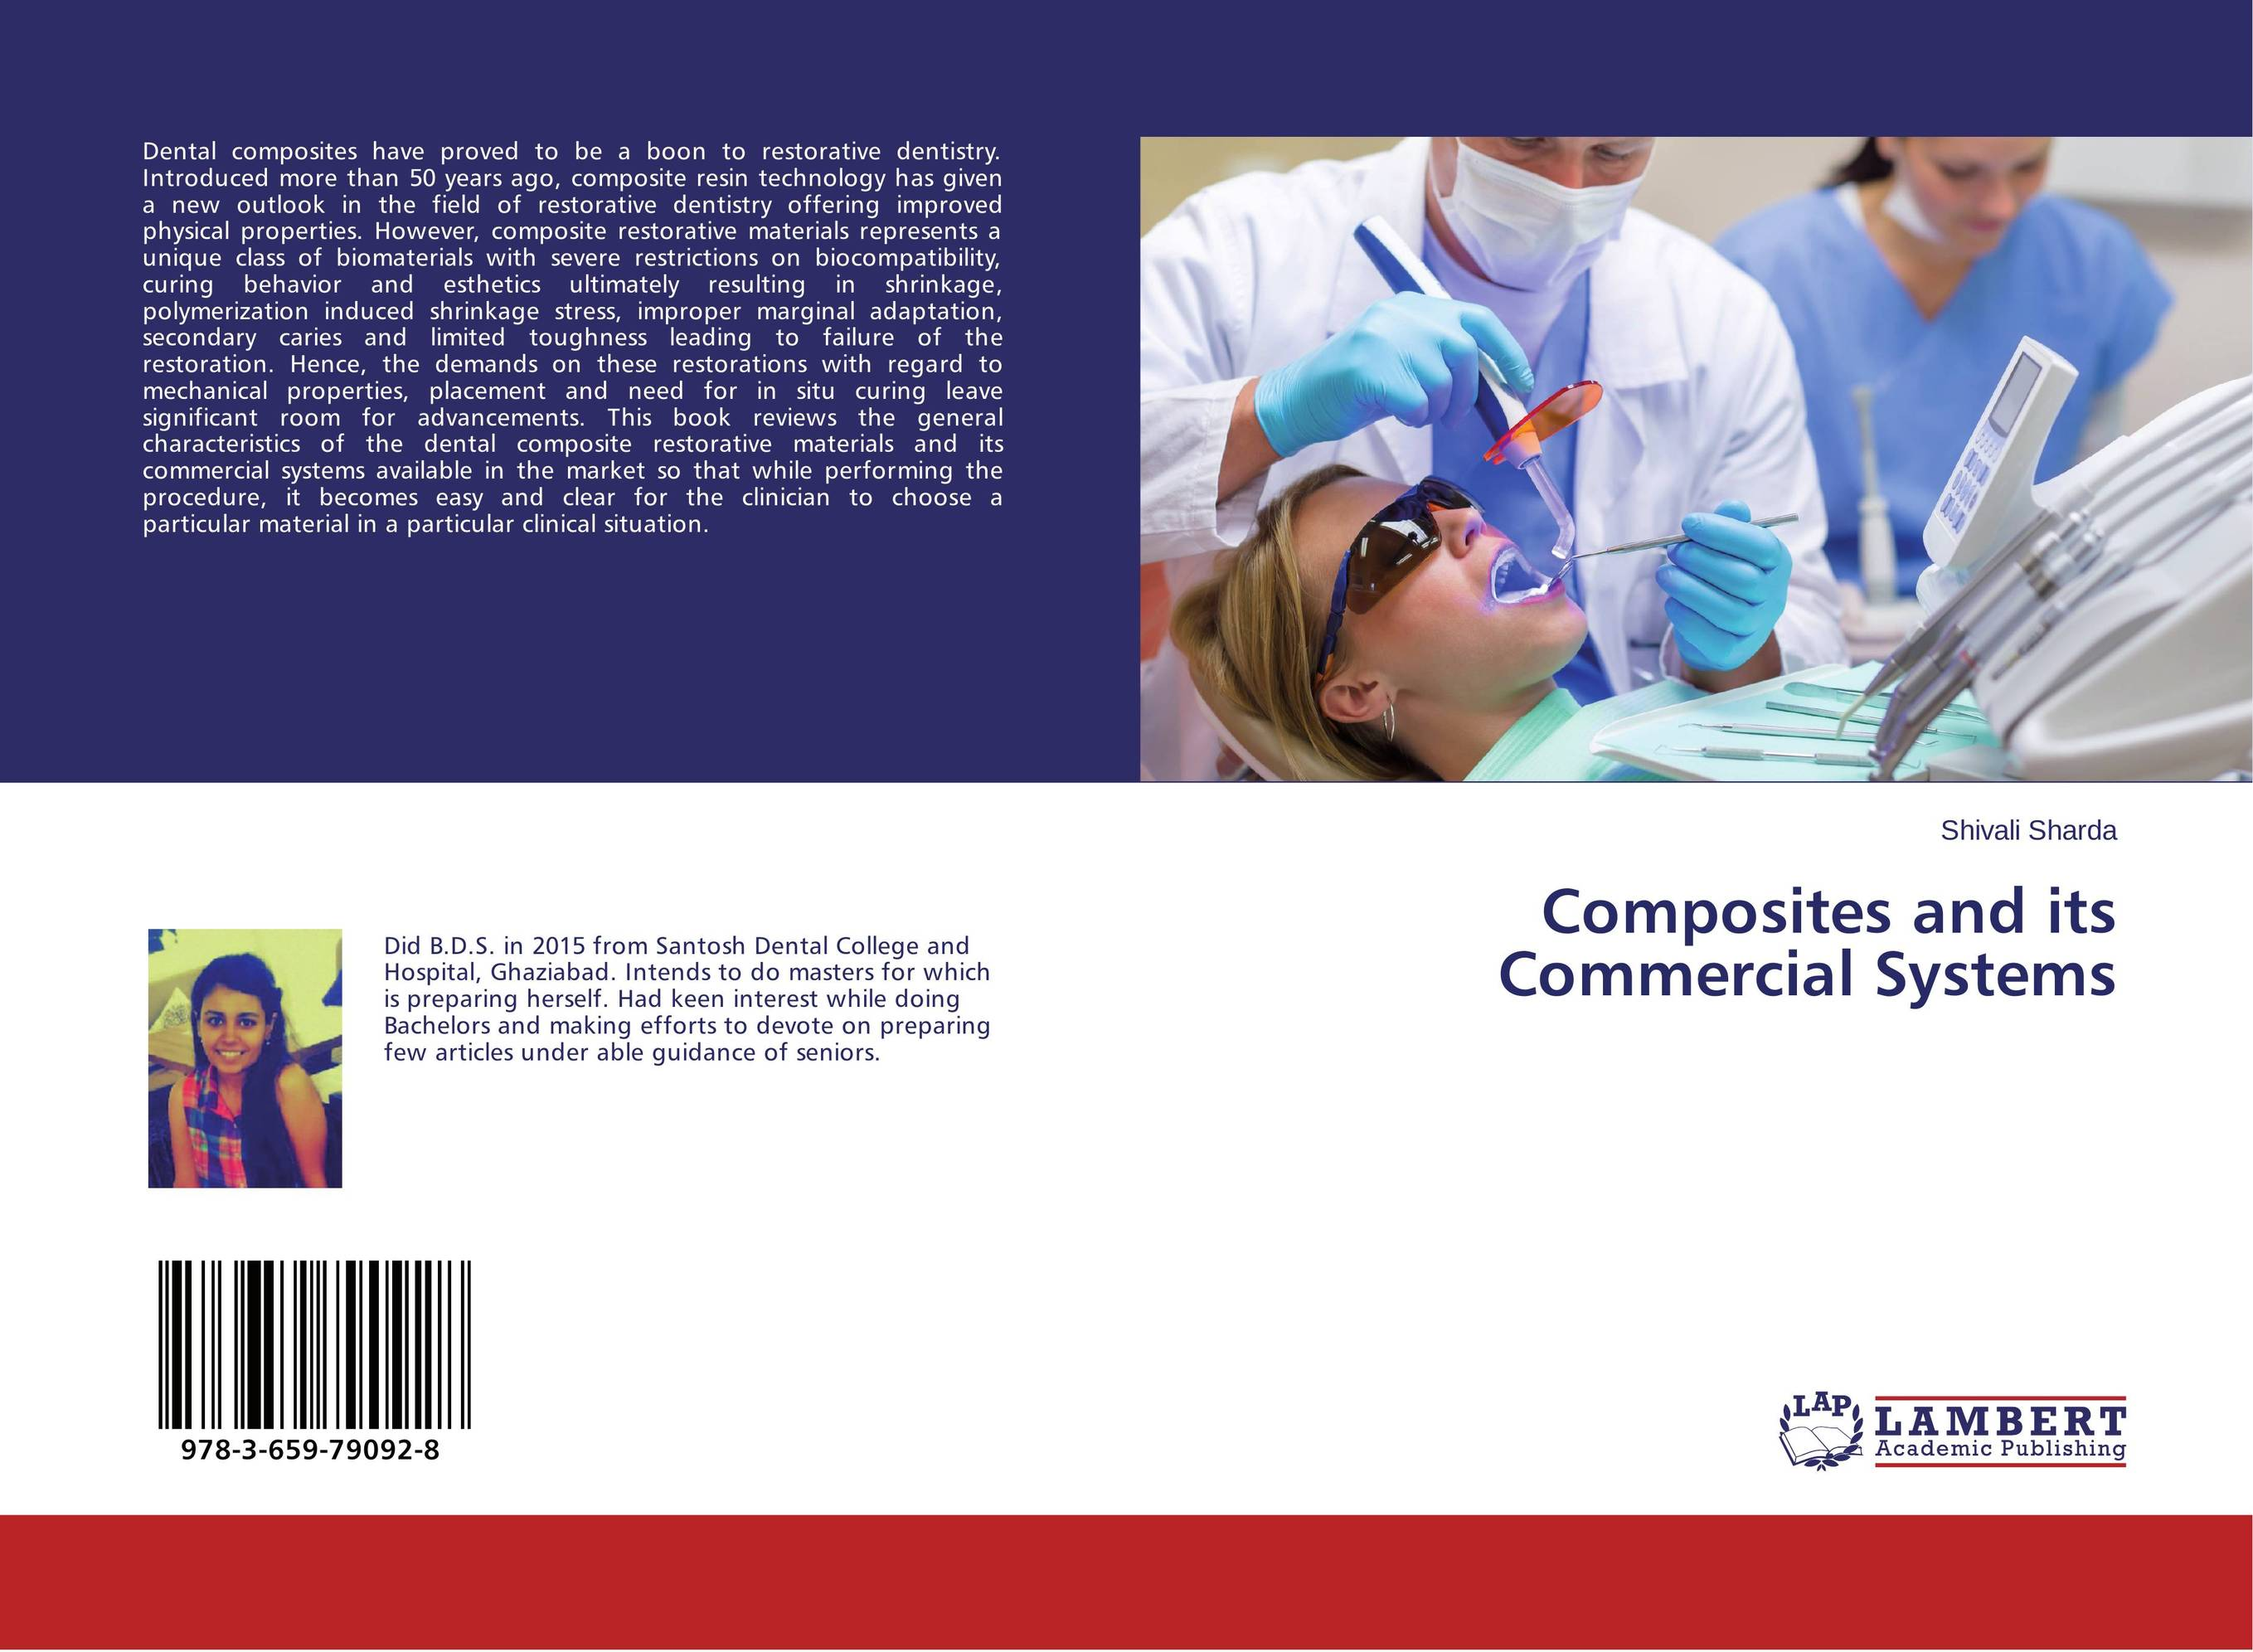 Composites and its Commercial Systems